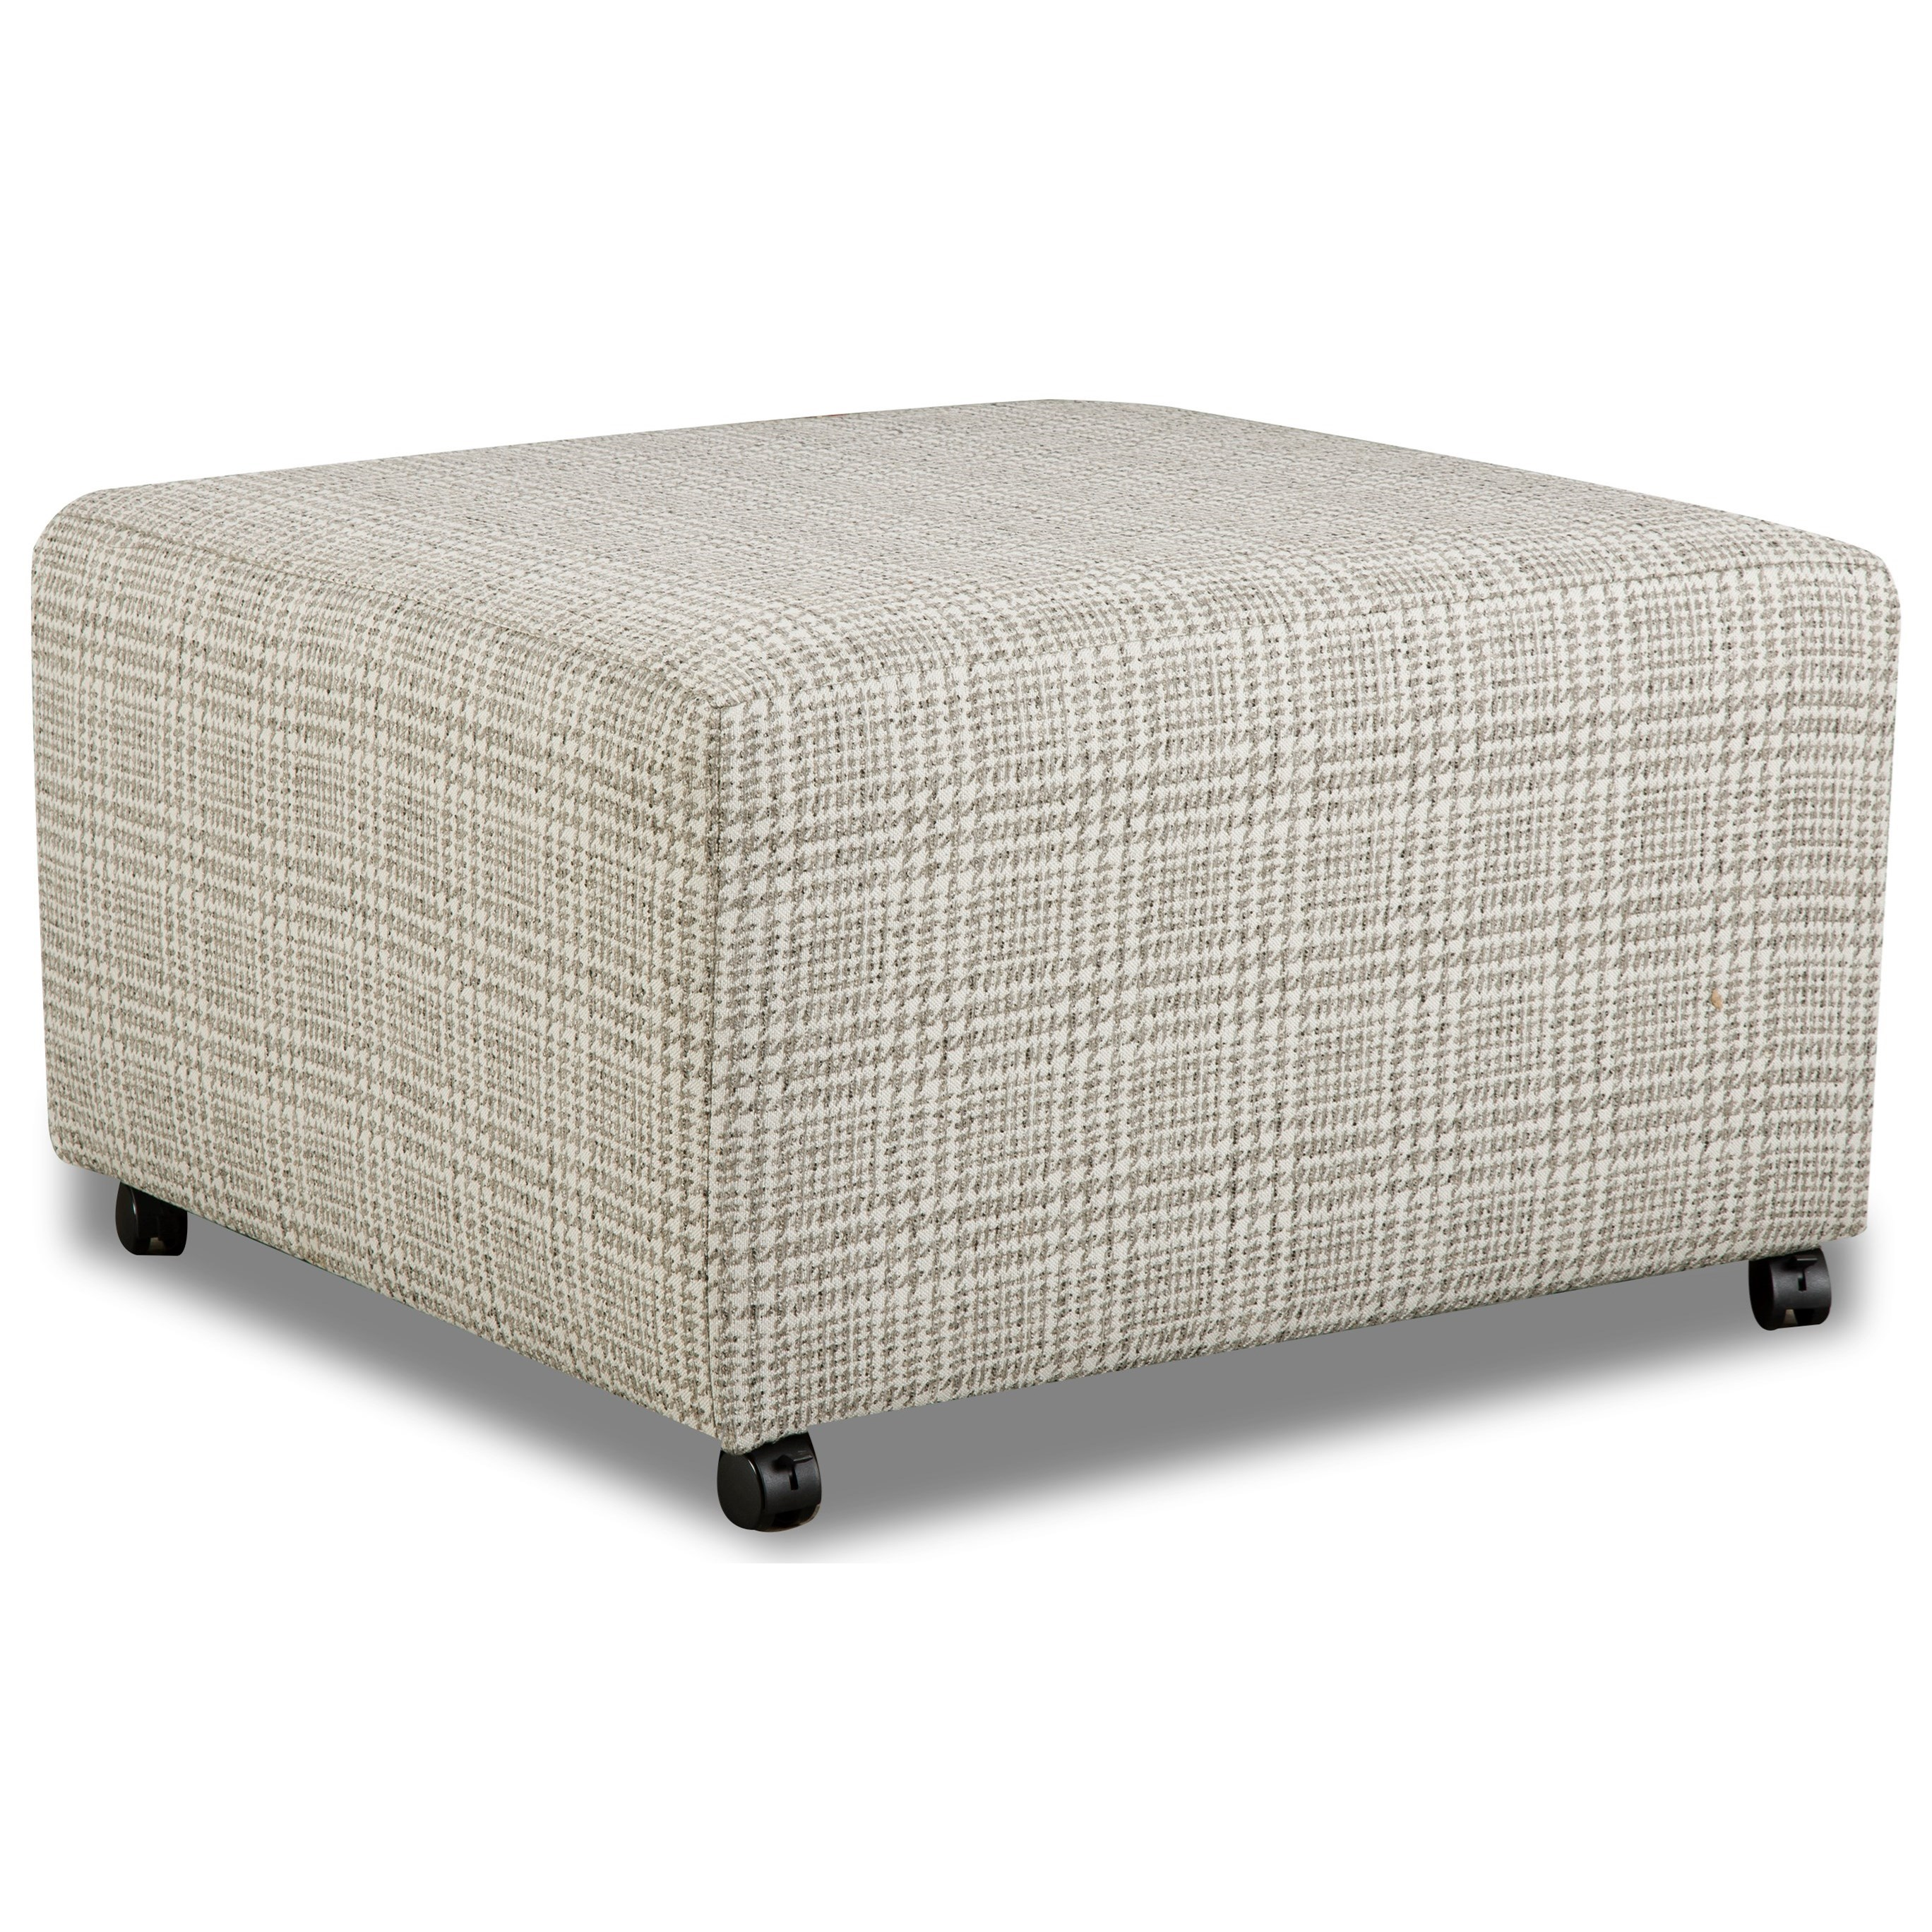 1100 Ottoman by Corinthian at Story & Lee Furniture